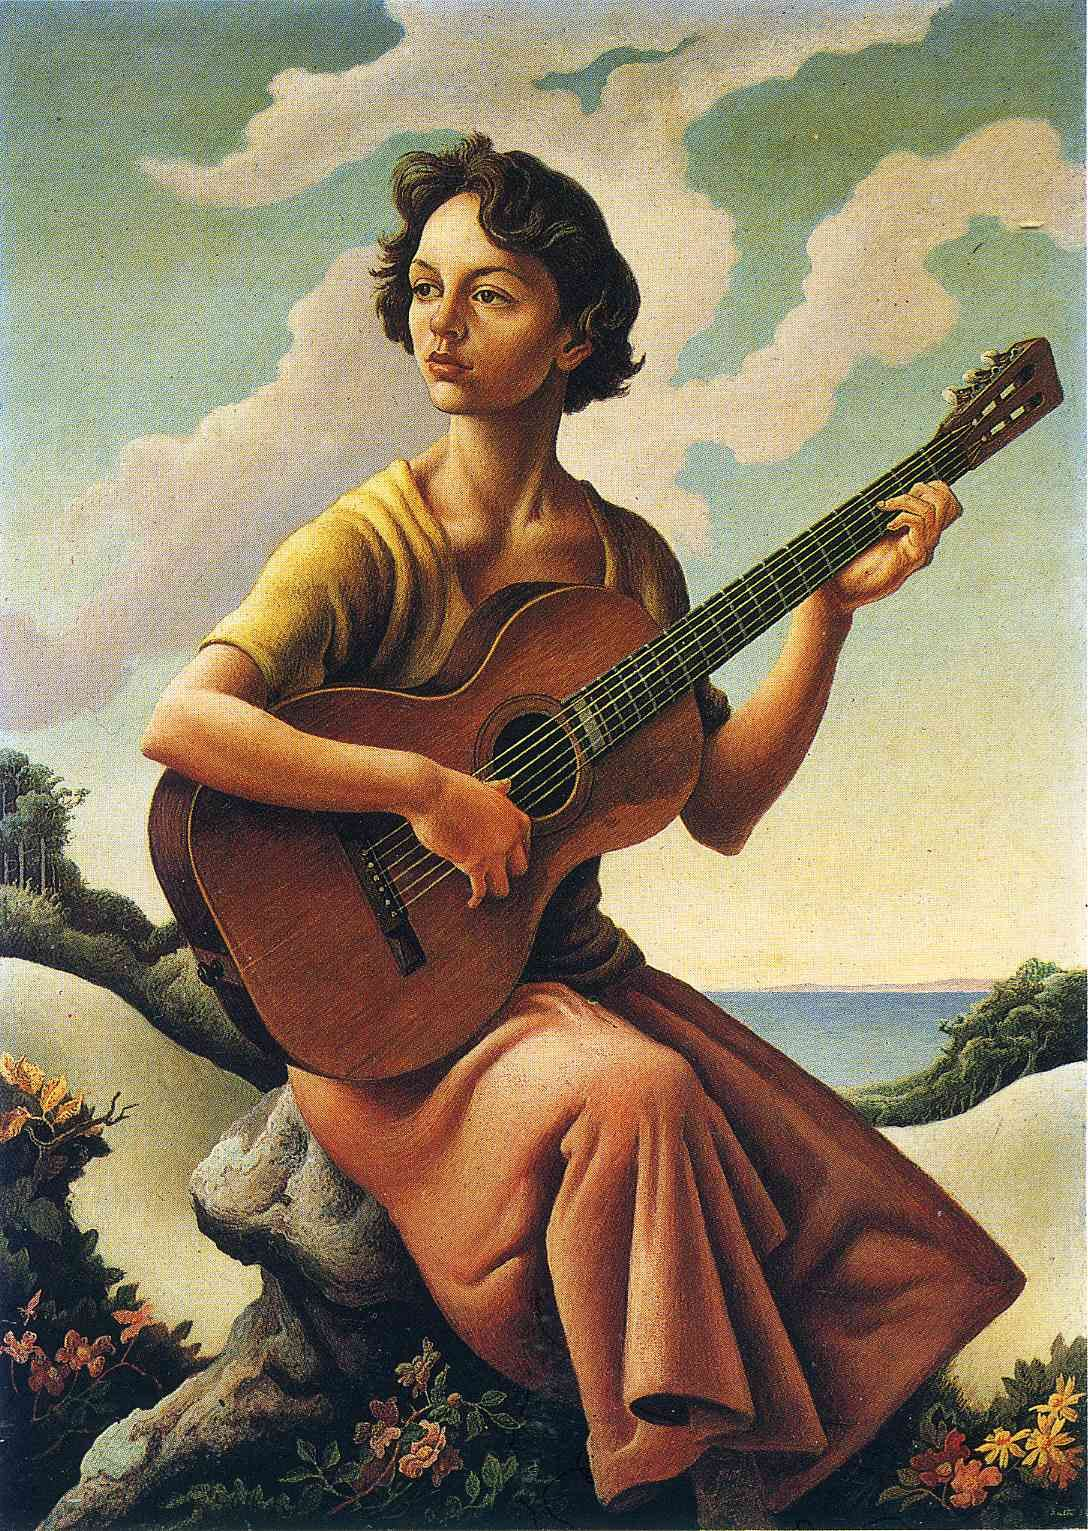 Jessie with guitar (1957). Thomas Hart Benton (American